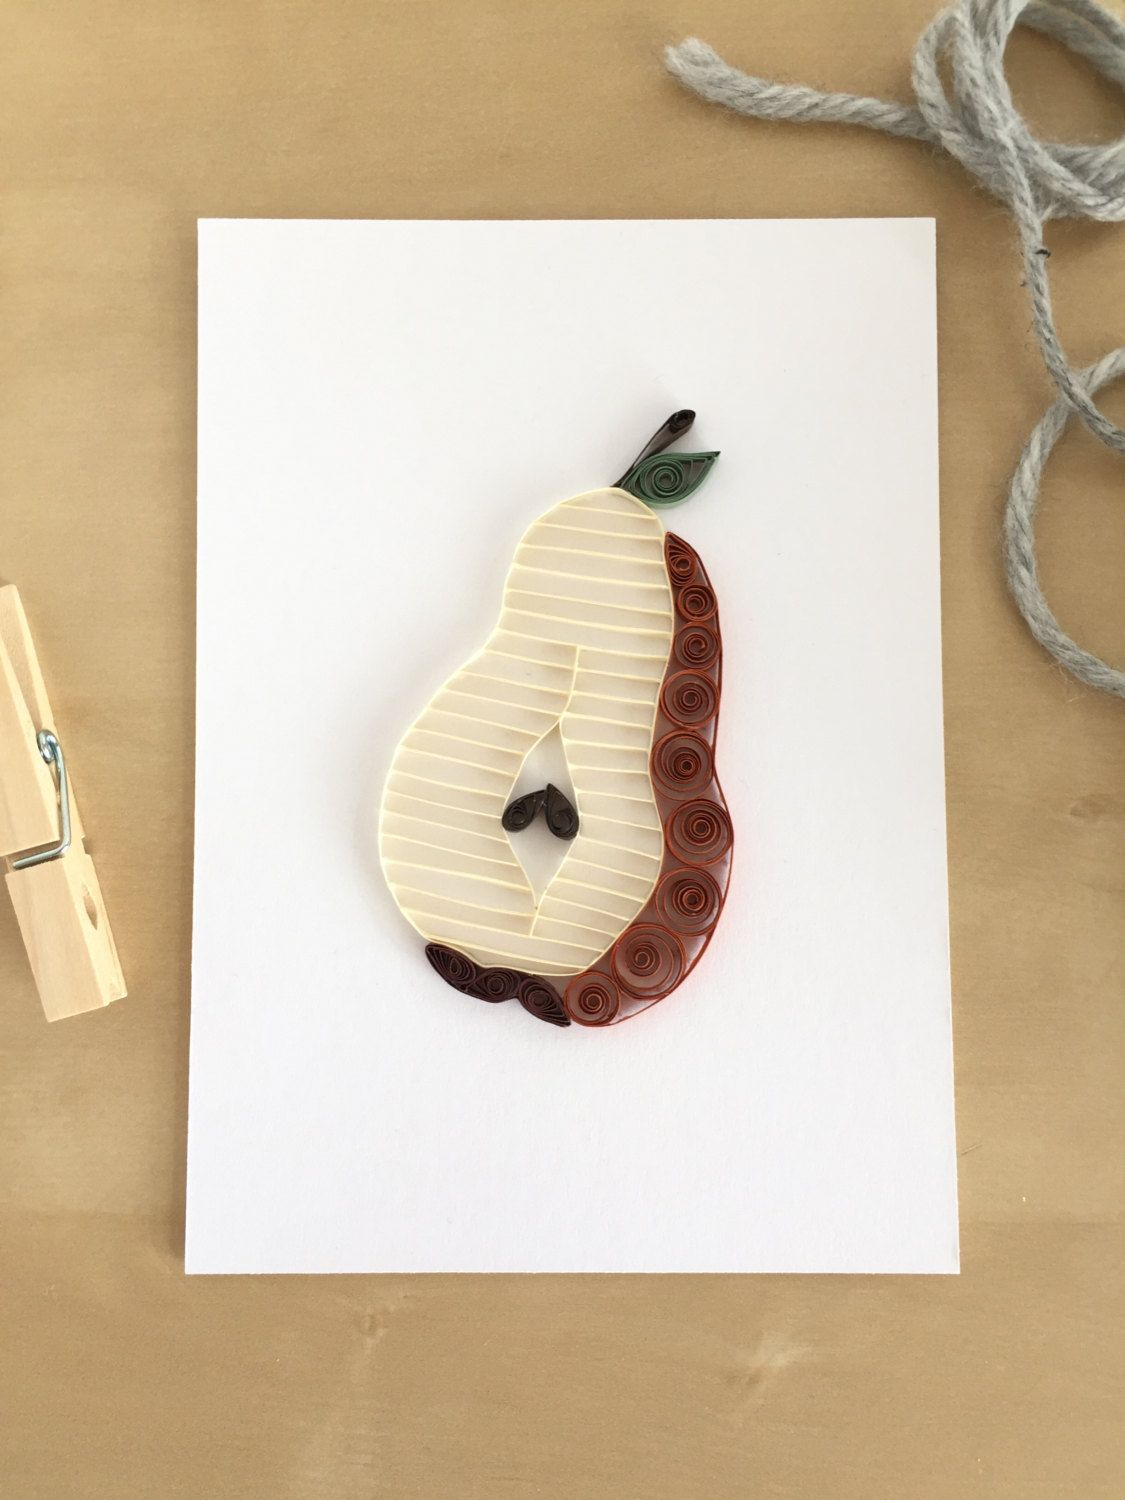 New To Thepaperycraftery On Etsy Quilling Paper Bosc Pear Home Decor Brown Wall Country Kitchen Art Rustic Decoration Foo Gift